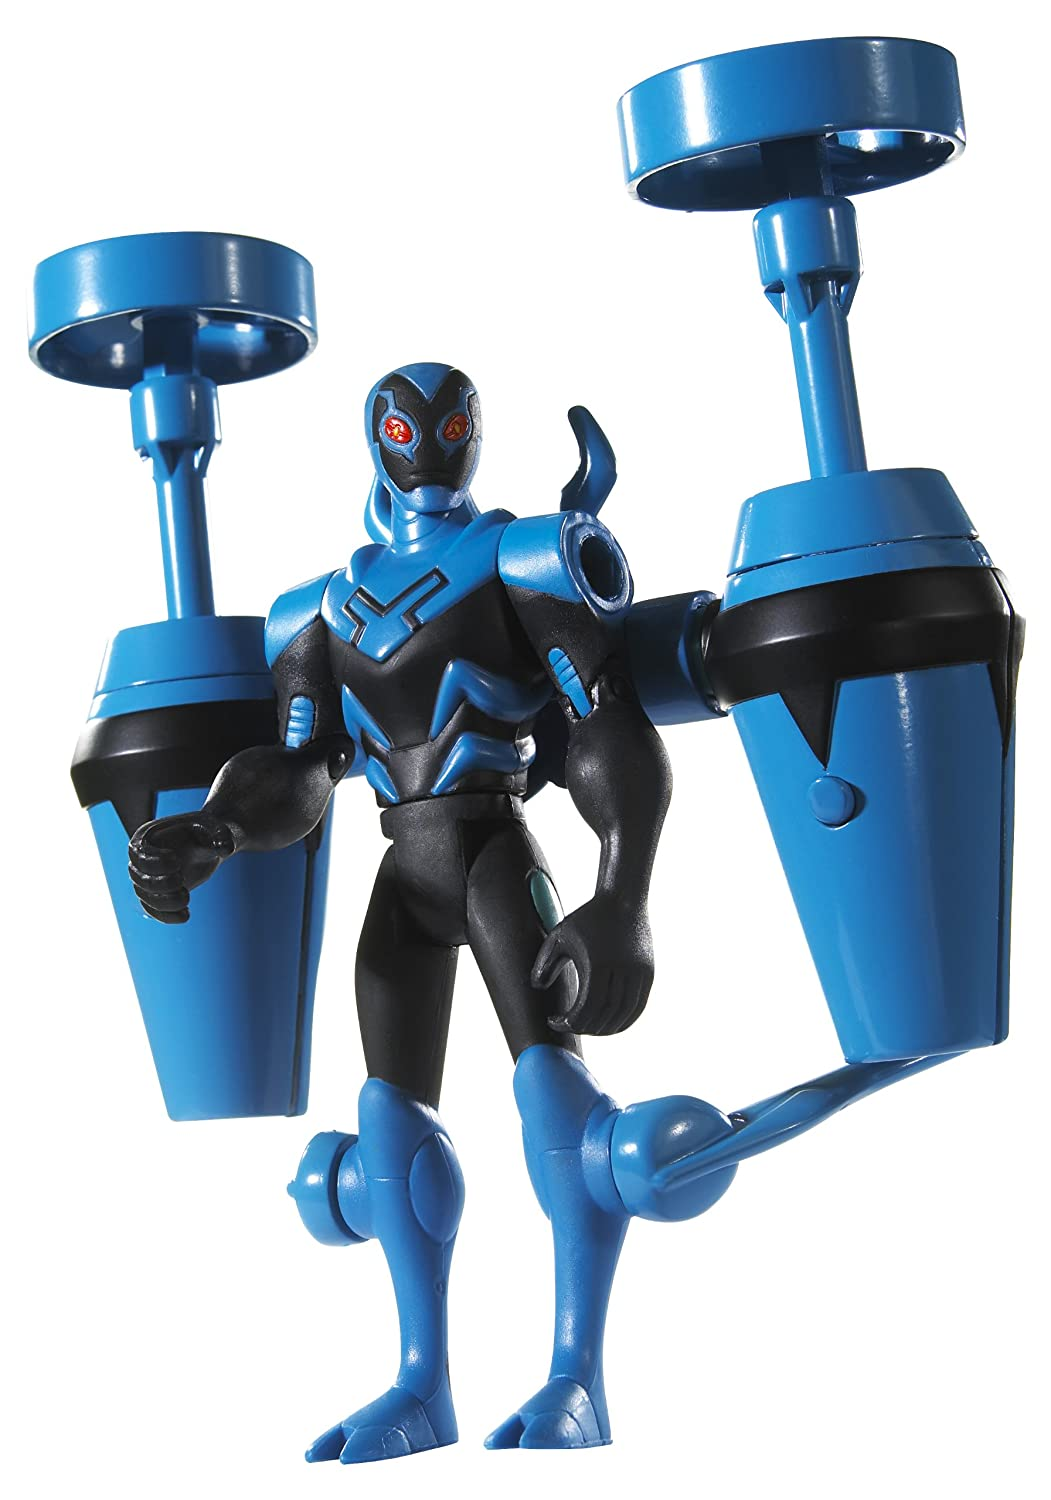 Batman - The Brave and the Bold - Cartoon Collection - TWIN TURBO Blau BEETLE - Deluxe Action Figur - OVP